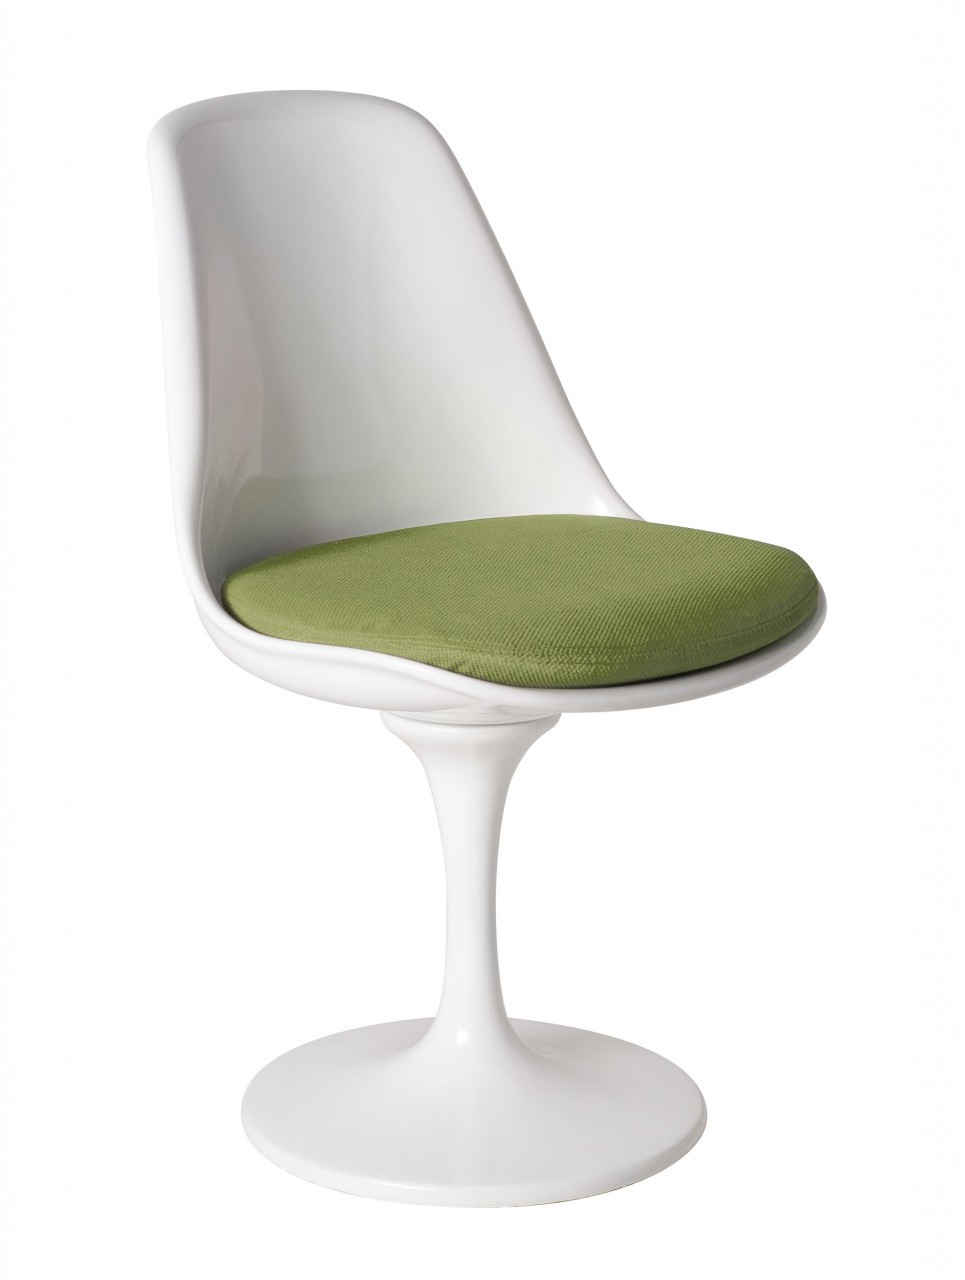 Replica Tulip Chair White Fibreglass Green Cushion